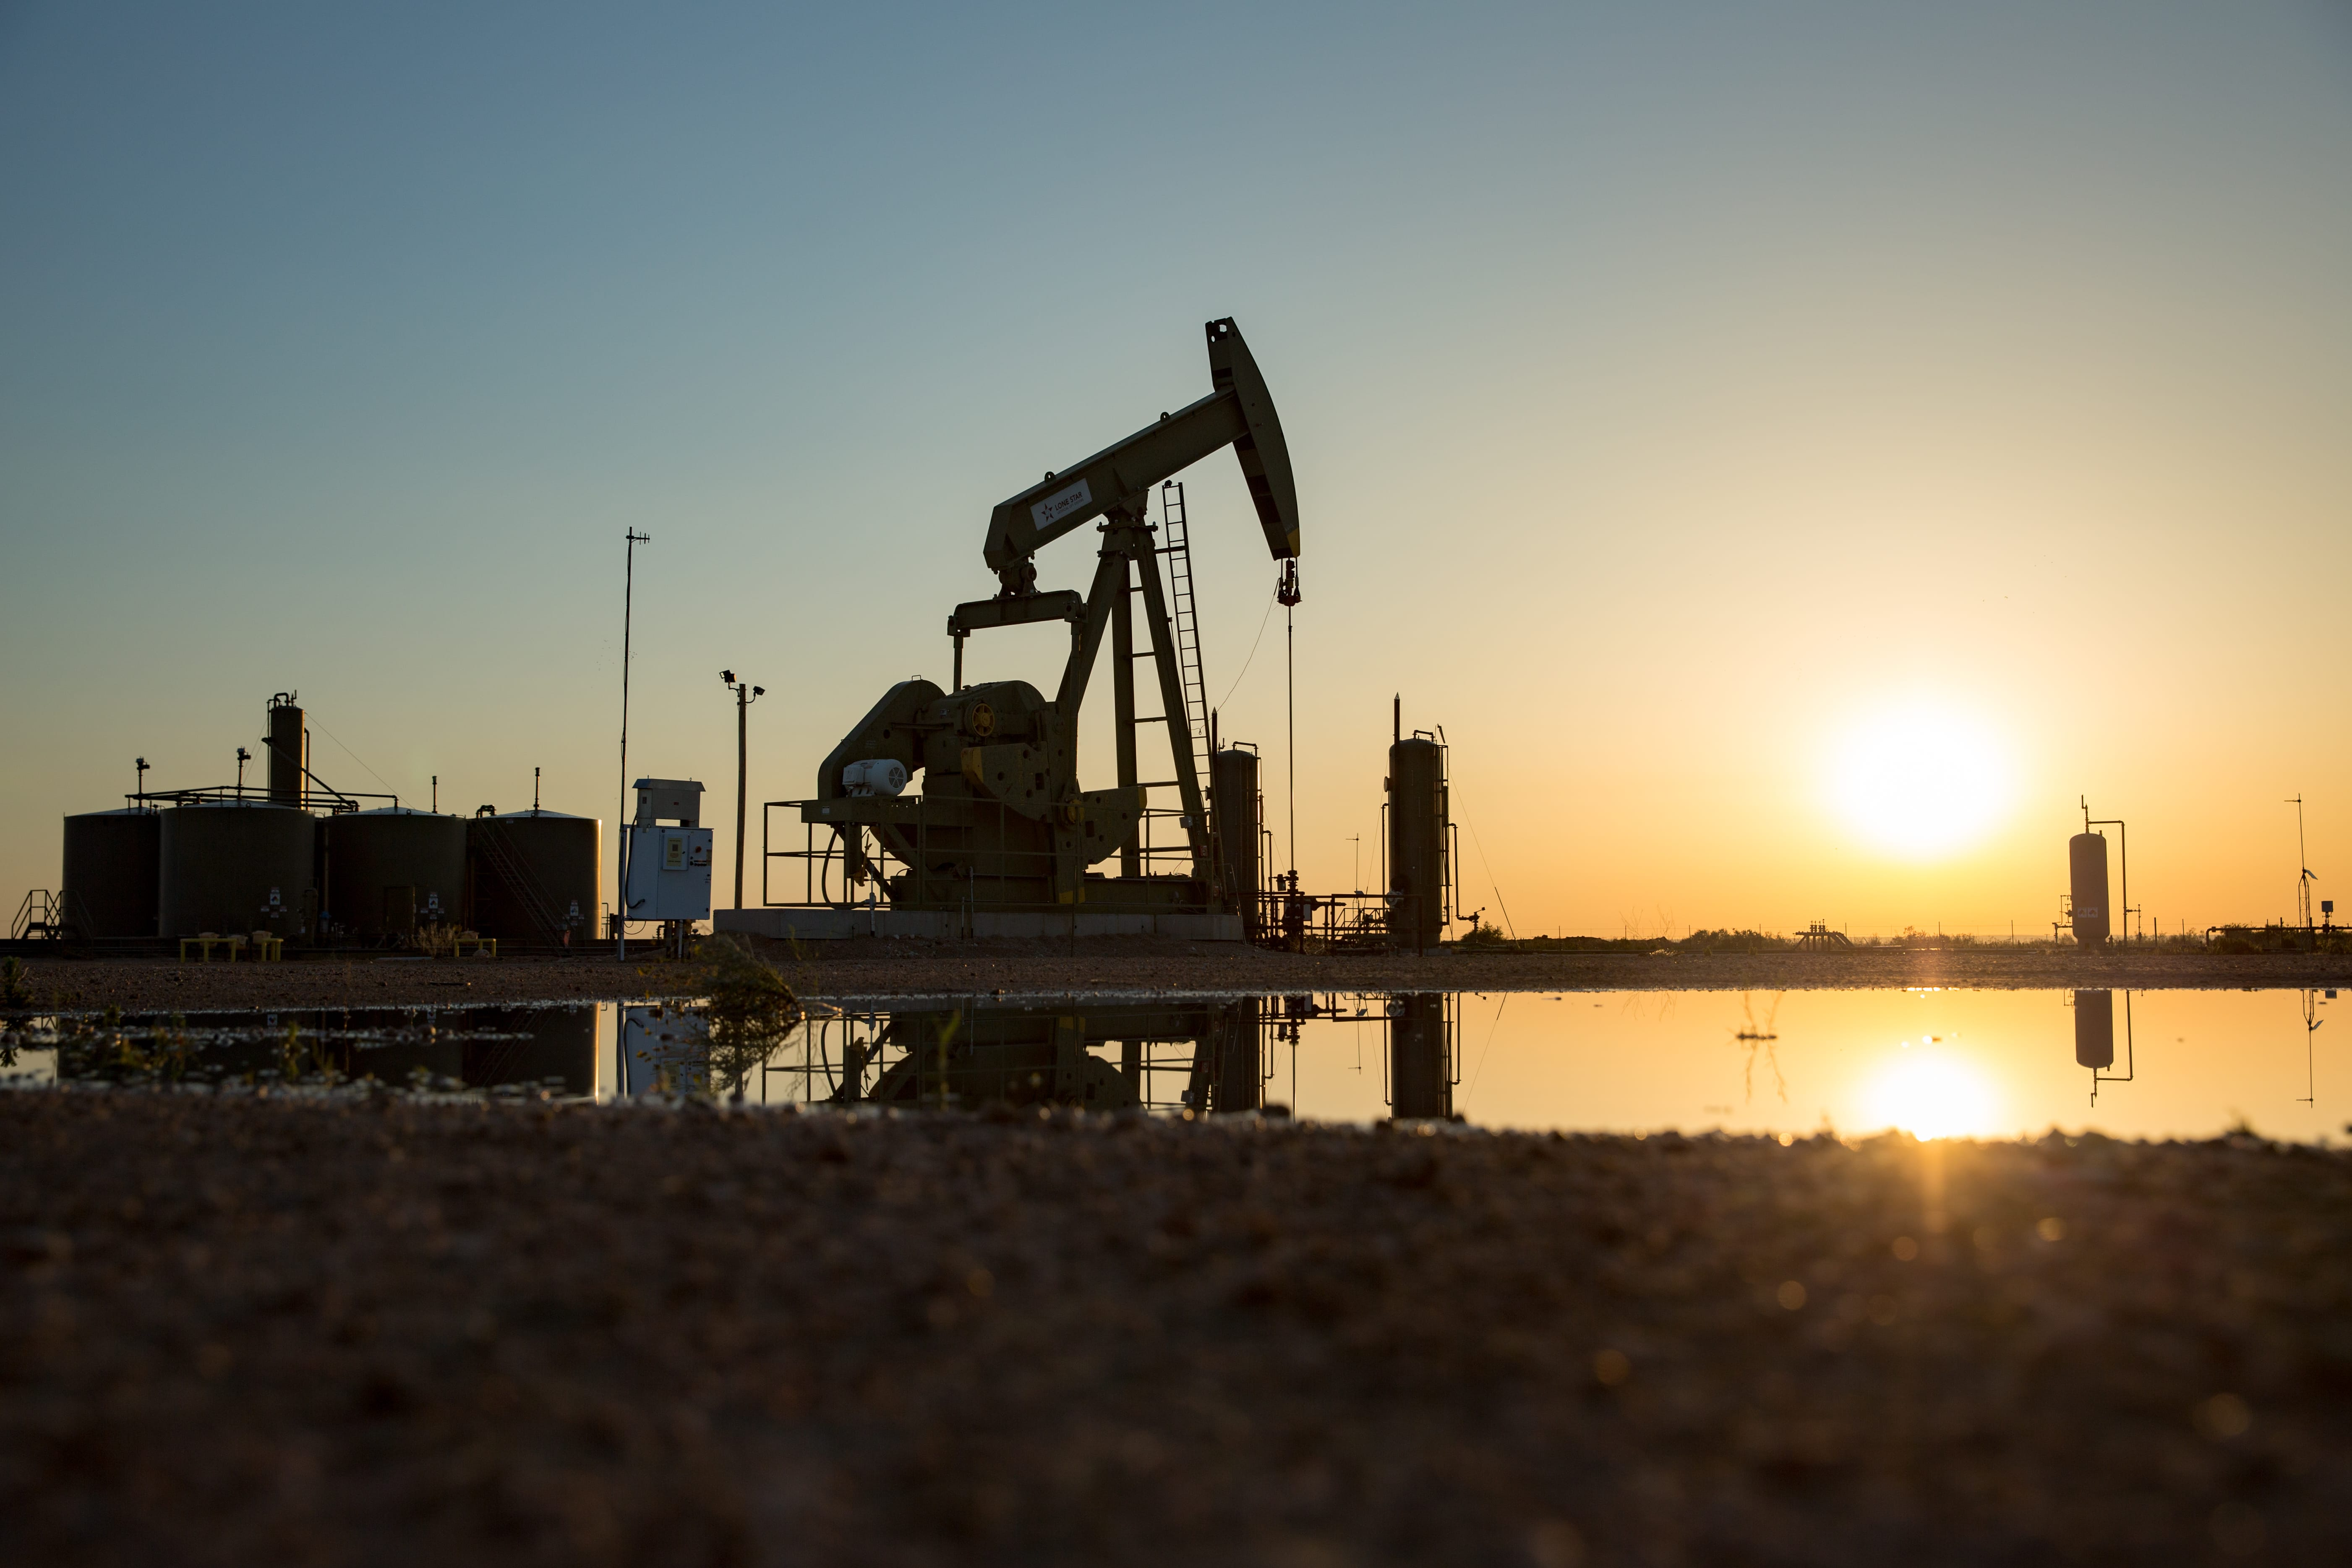 A pump jack operates in Carlsbad, N.M. (Robin Zielinski for the Center for Public Integrity)